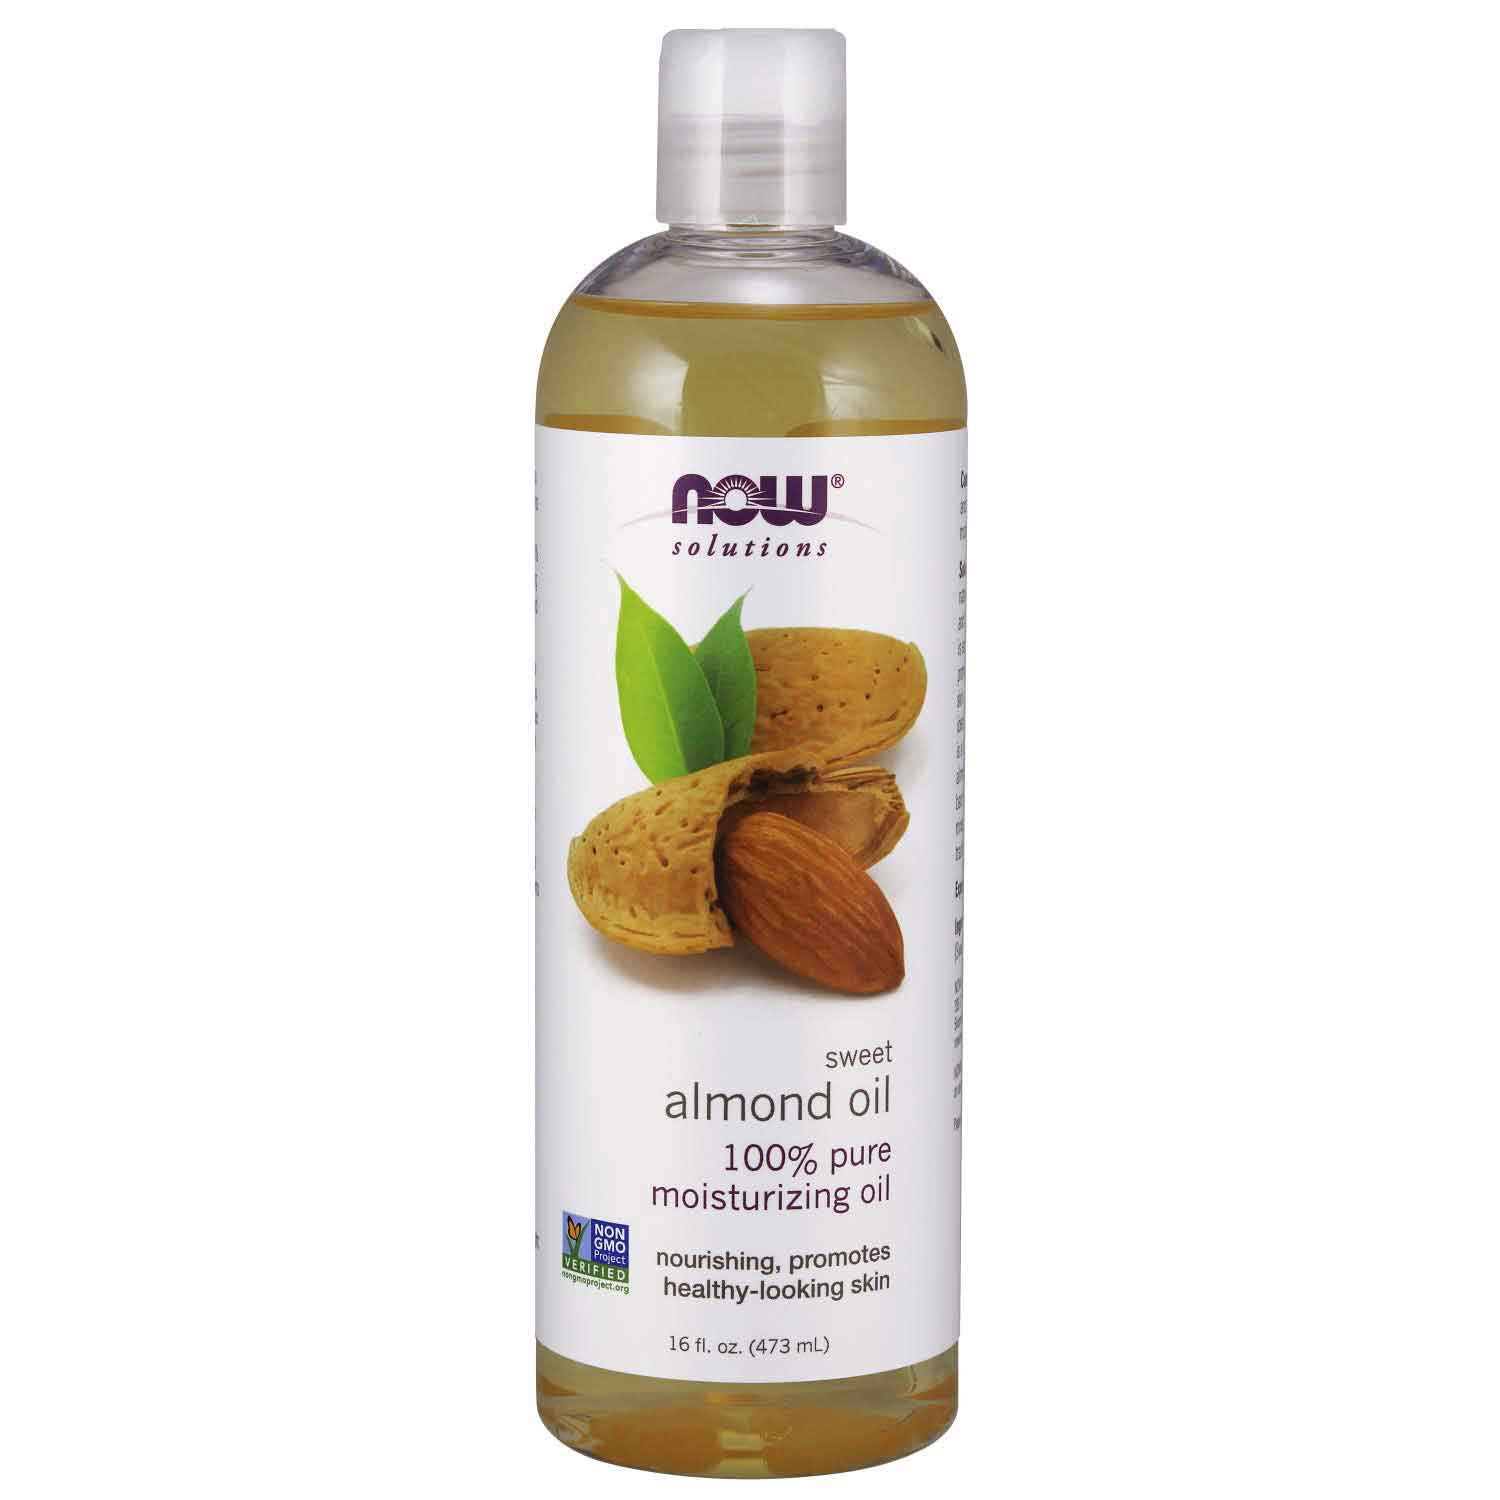 NOW Solutions in Sweet Almond Oil